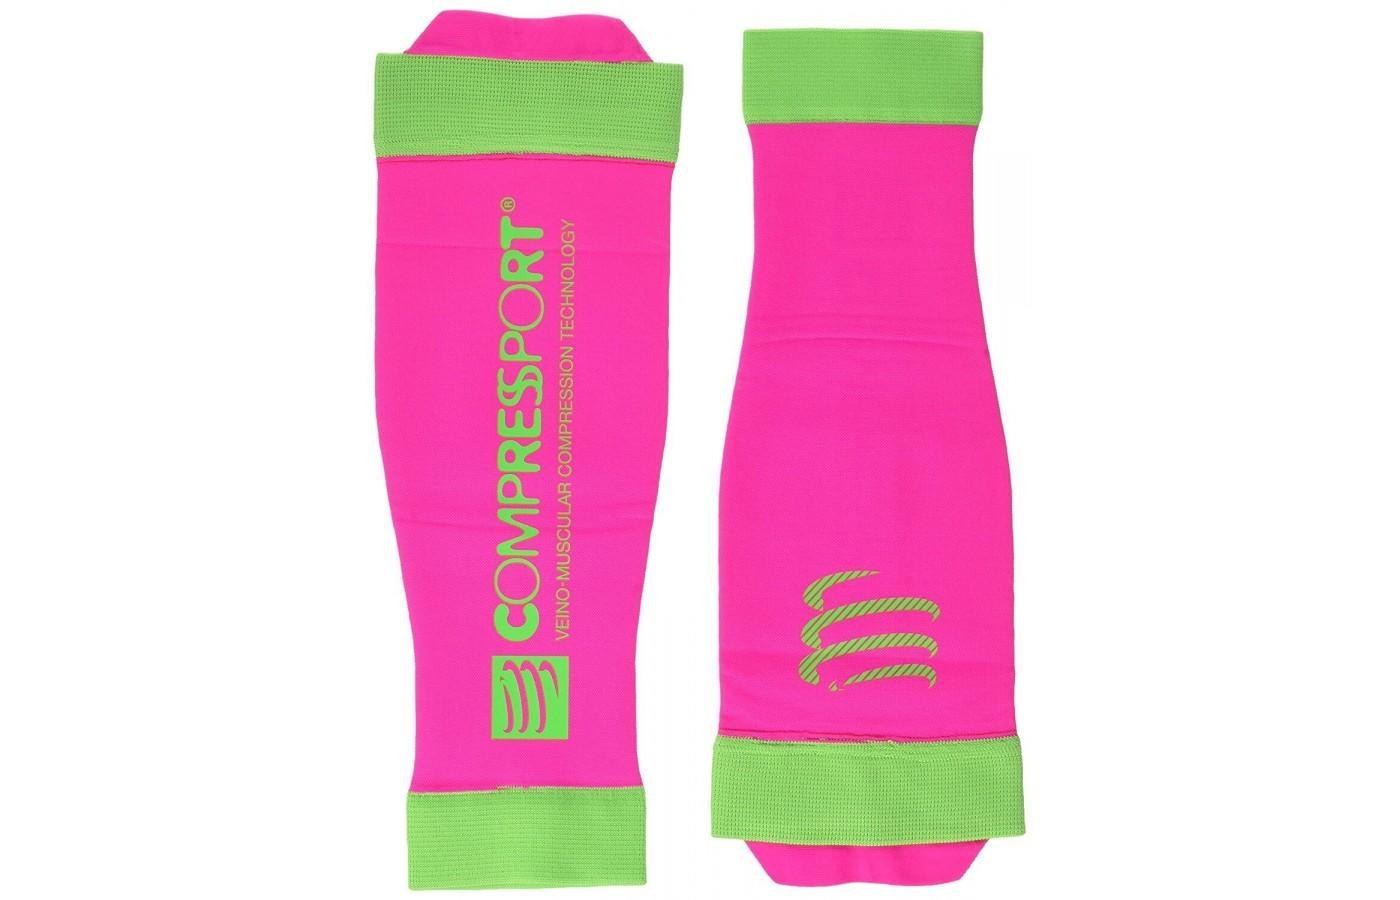 The Compresssport Calf Sleeves come in an array of colors